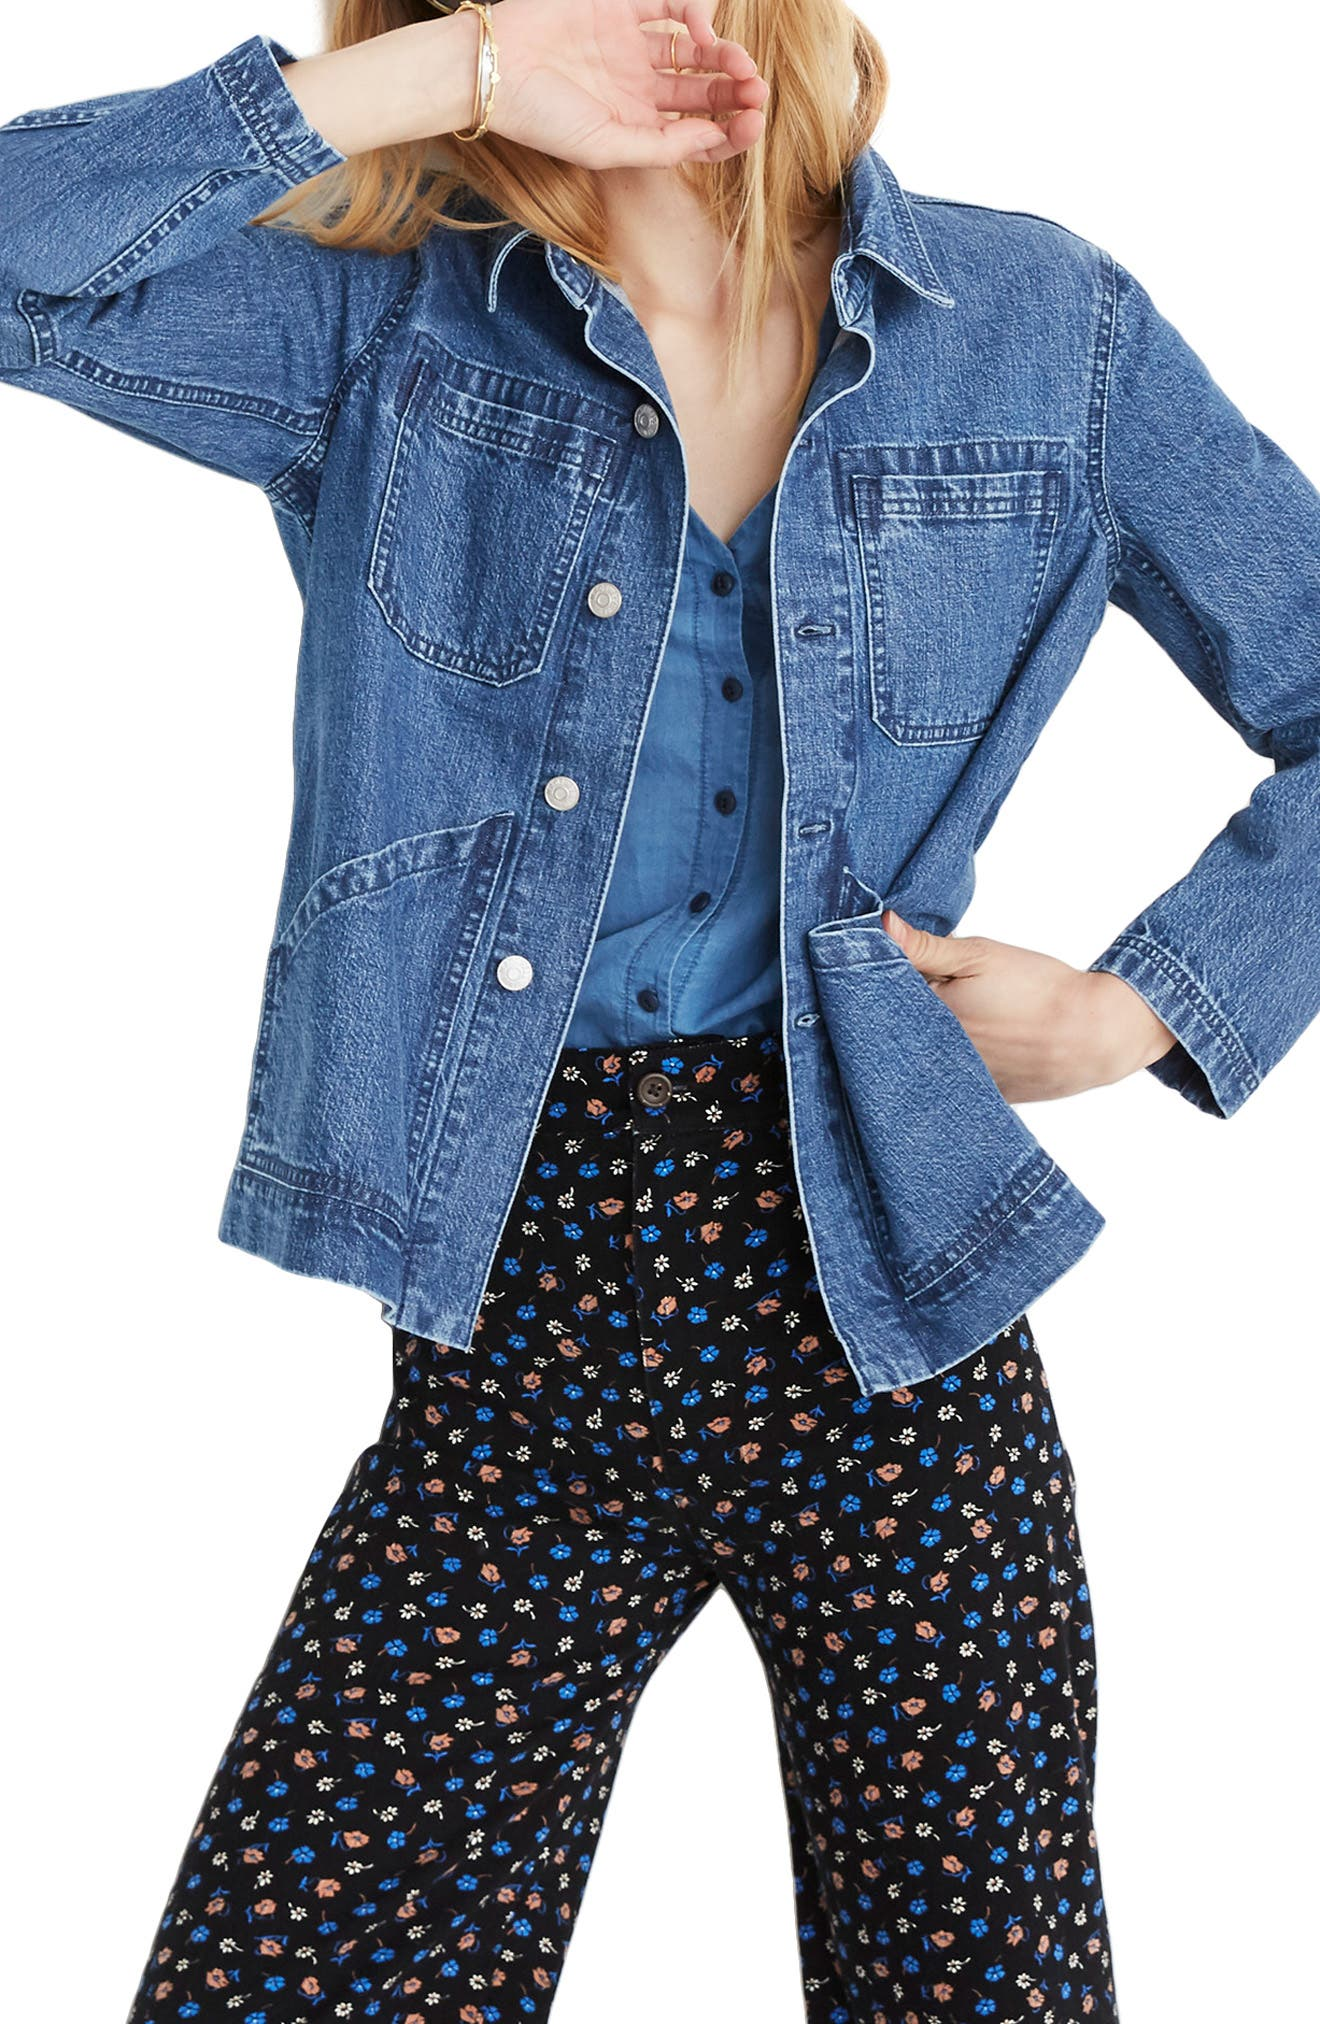 MADEWELL, Denim Patch Pocket Chore Coat, Main thumbnail 1, color, 400